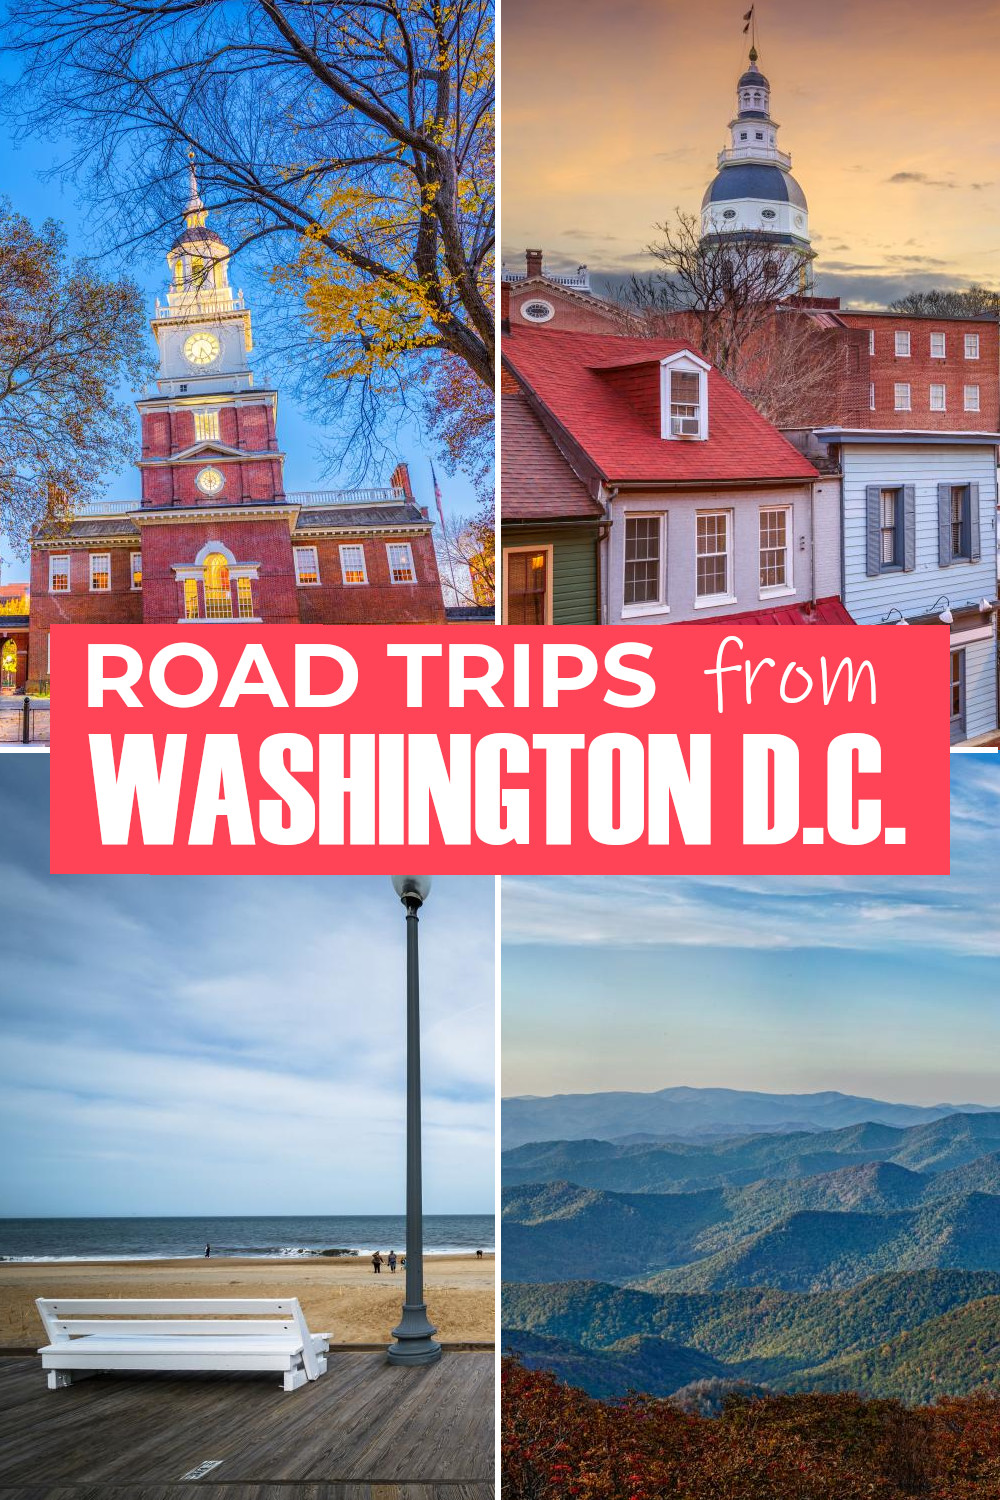 Road trips from Washington D.C. - from short drives to small towns and beaches to long trips up and down the East Coast, culture, history and scenic roads.